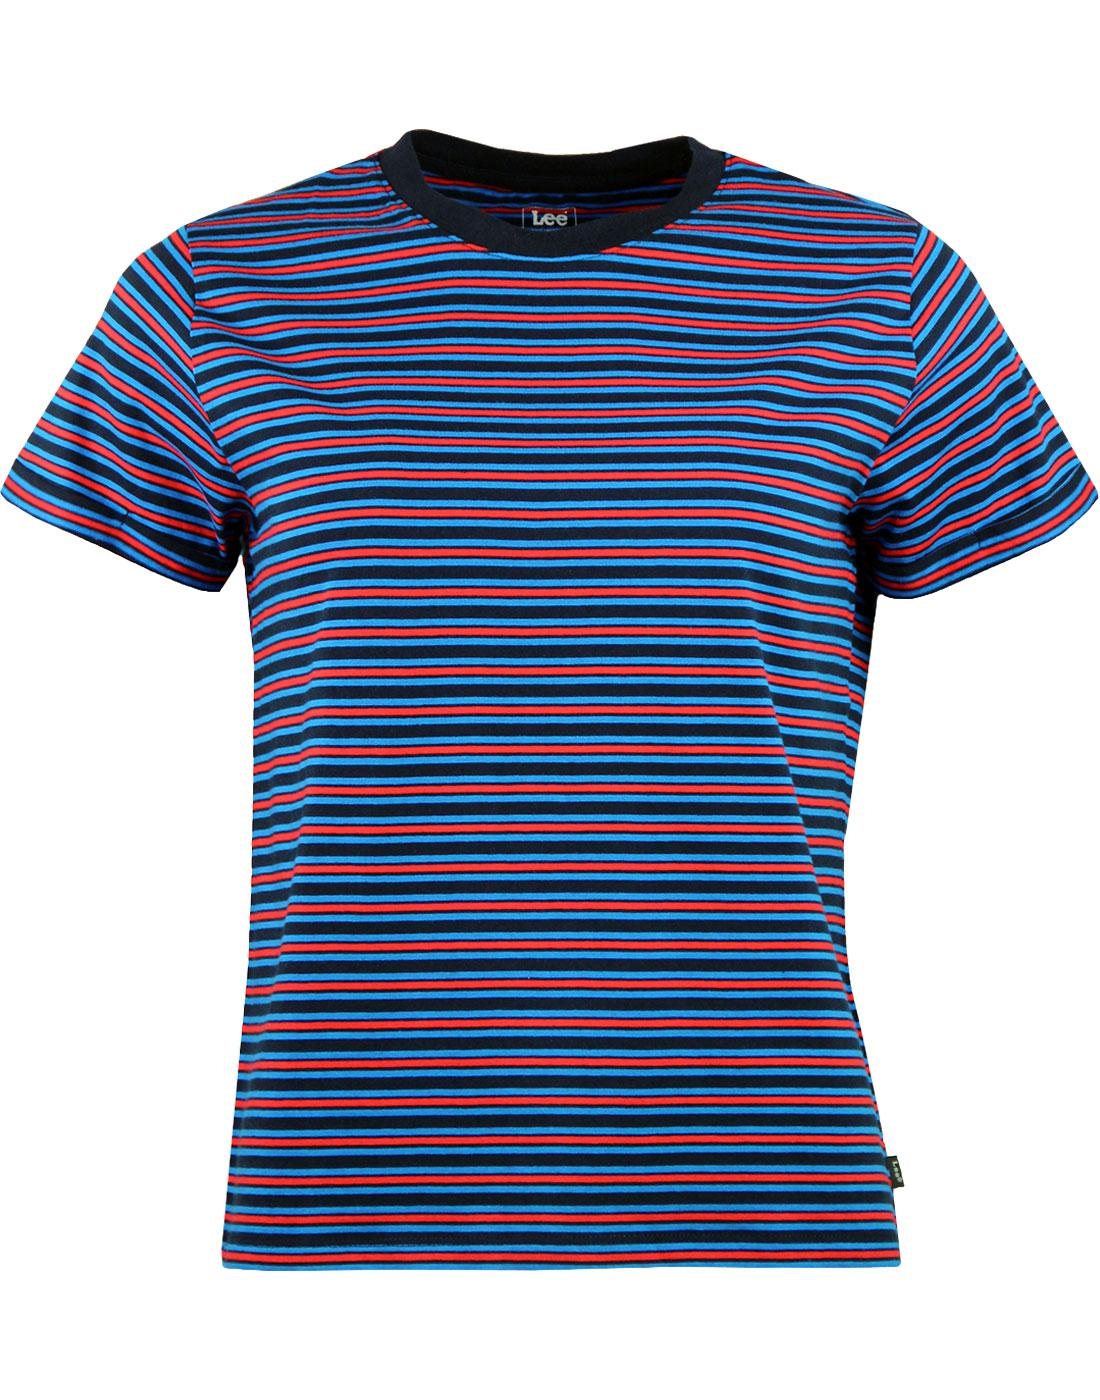 LEE Women's Retro Short Sleeve Multi Stripe Tee